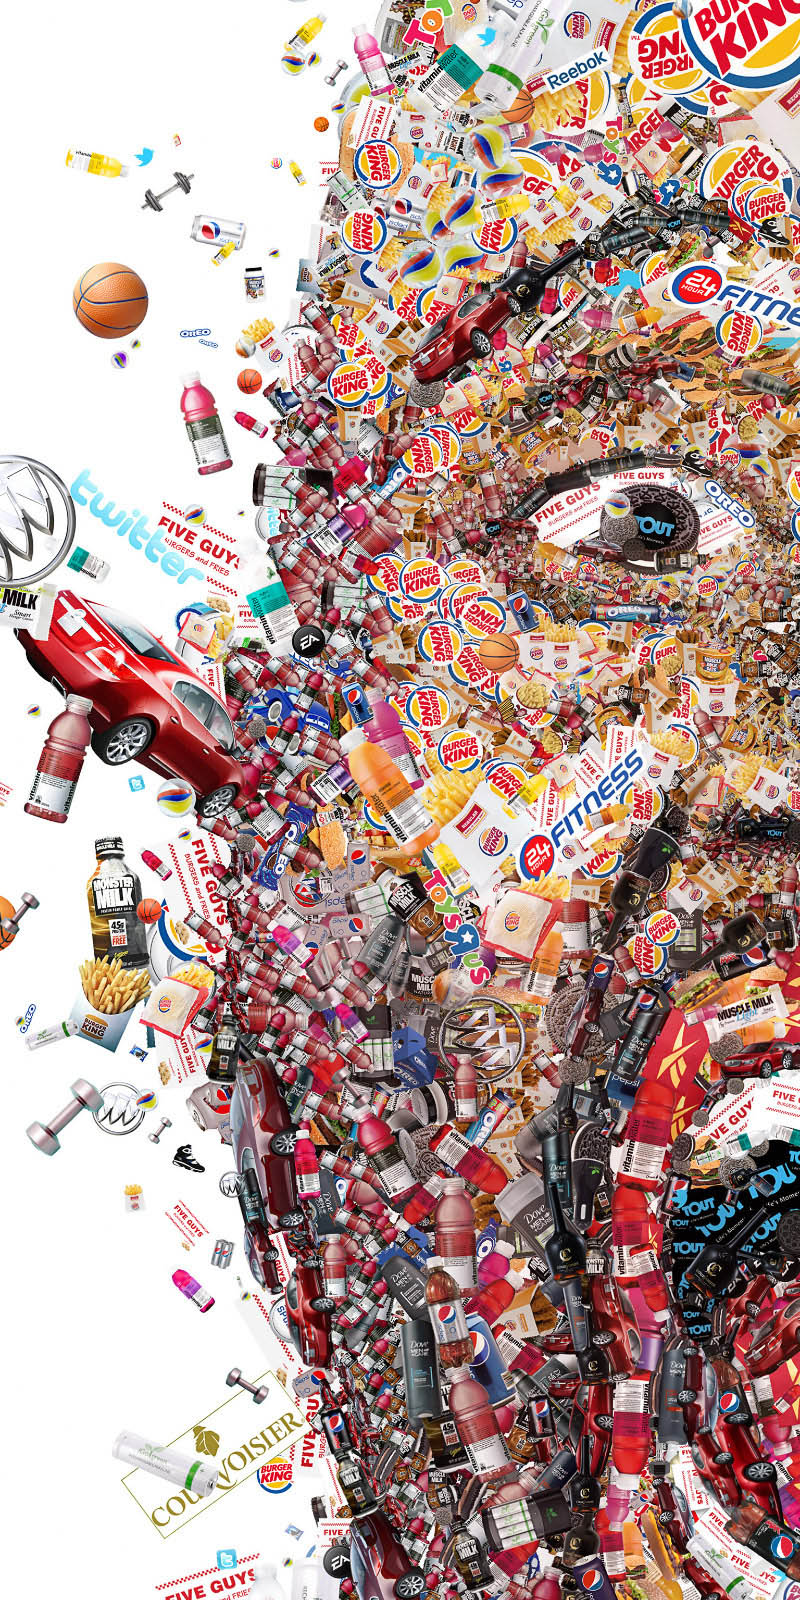 close up of photo mosaic for shaq for fast company by charis tsevis